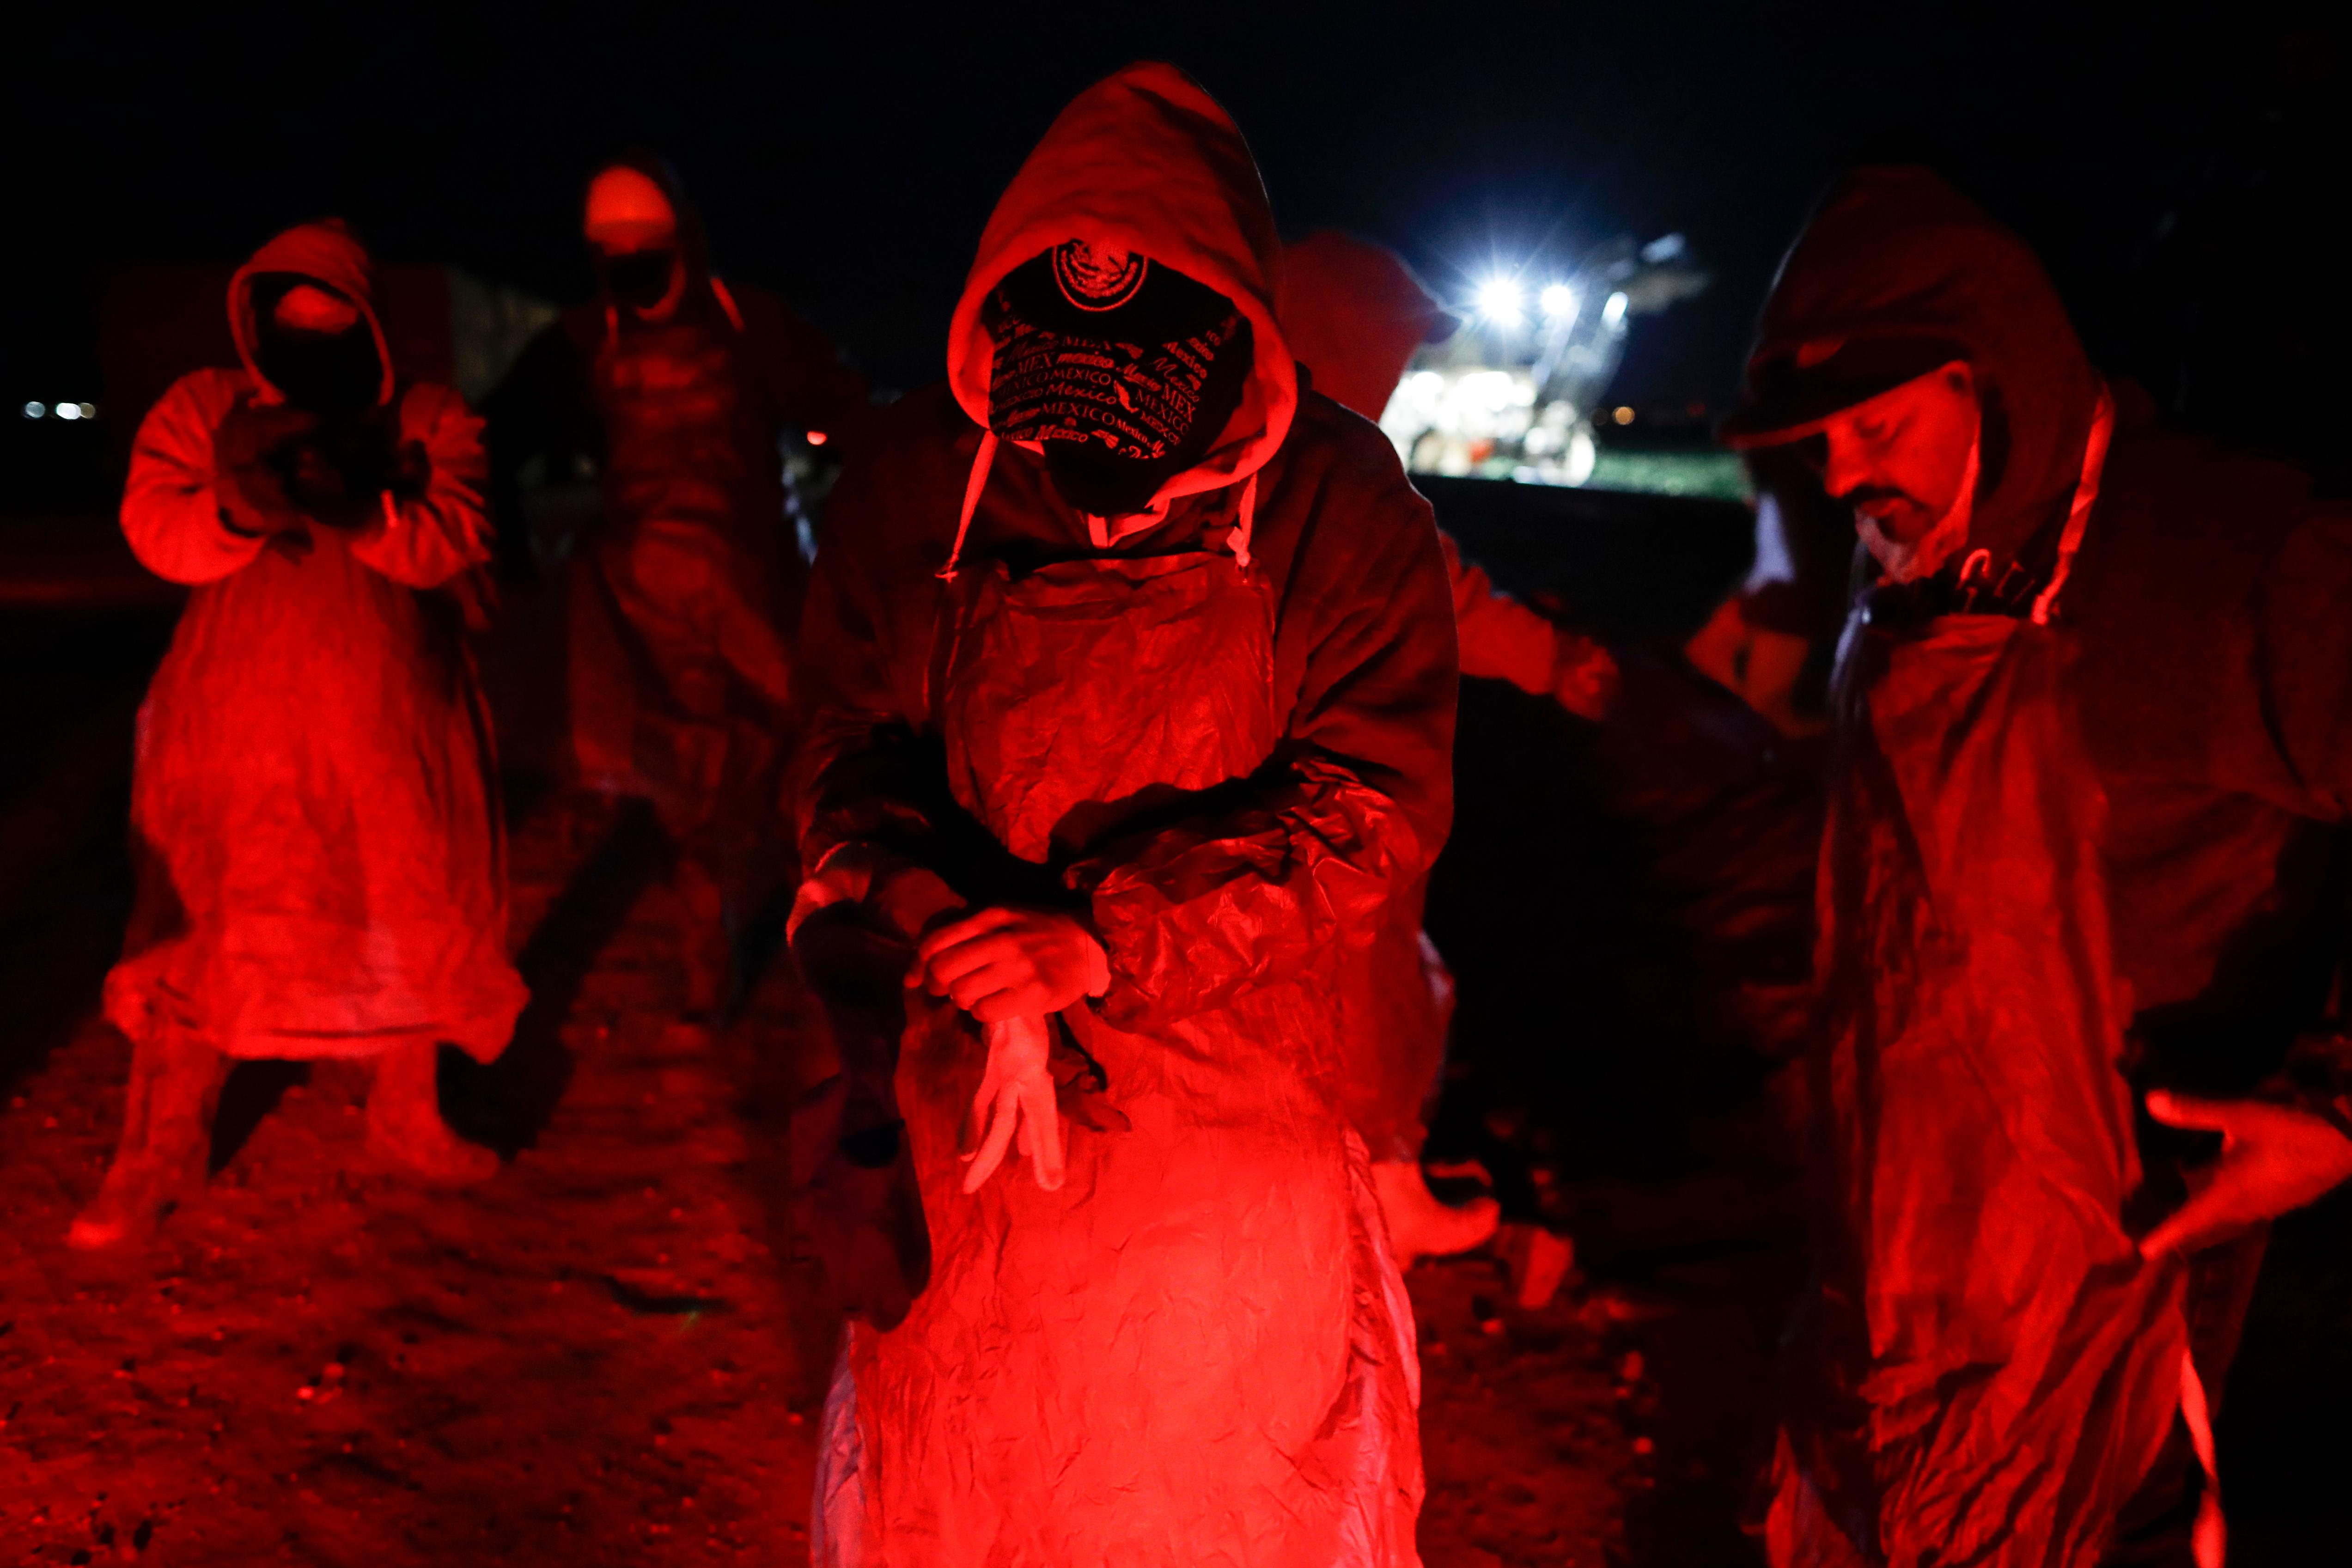 "In this March 6, 2018 photo, farmworker Eduardo Garcia, of Mexicali, Mexico, center, puts on an apron and gloves in the glow from the taillights of a bus, as he and his crew arrive at a cabbage field ready for harvest, before dawn outside of Calexico, Calif. For decades, cross-border commuters have picked lettuce, carrots, broccoli, onions, cauliflower and other vegetables that make California's Imperial Valley ""America's Salad Bowl"" from December through March. As Trump visits the border for the first time as president on Tuesday, March 13, the harvest is a reminder of how little has changed despite heated rhetoric in Washington. (AP Photo/Gregory Bull)"